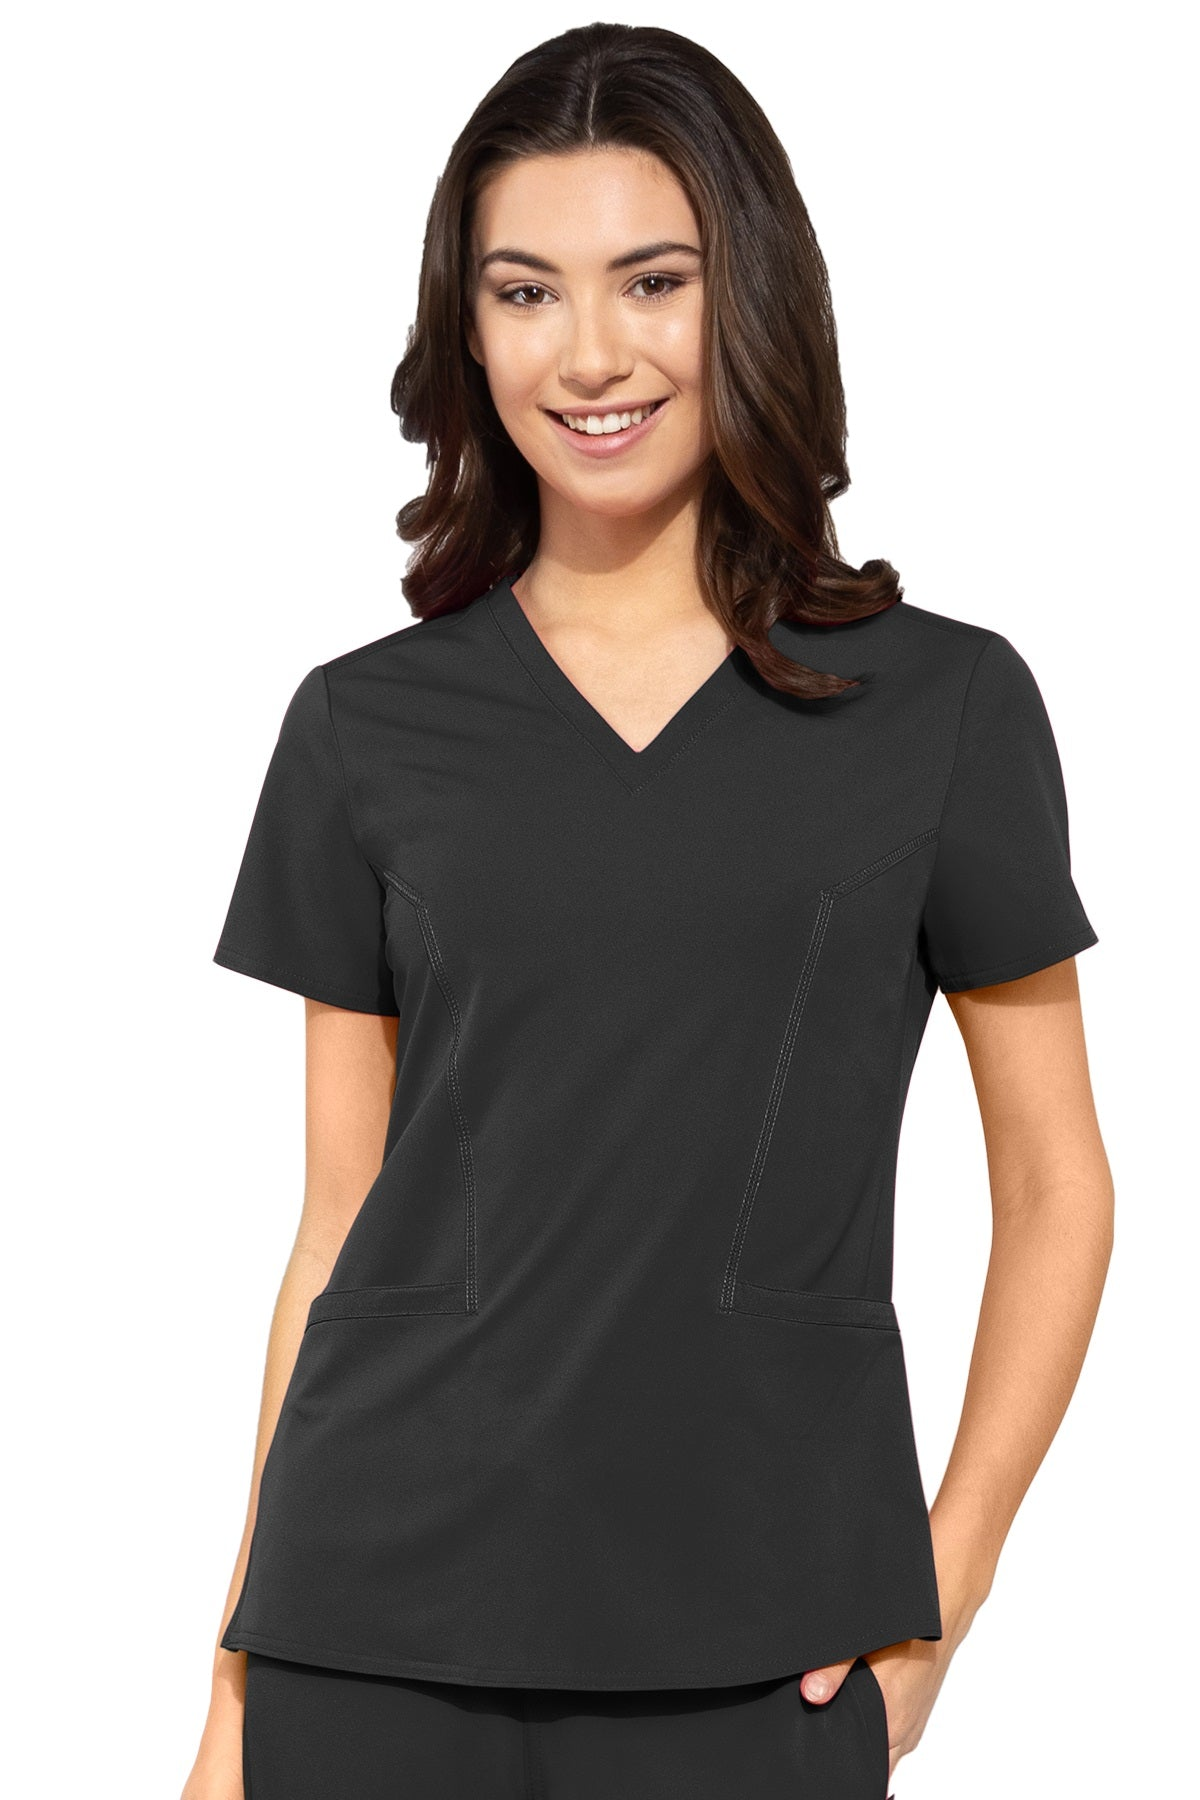 Med Couture Plus Size Scrub Top Peaches Double V-Neck in Black at Parker's Clothing and Shoes